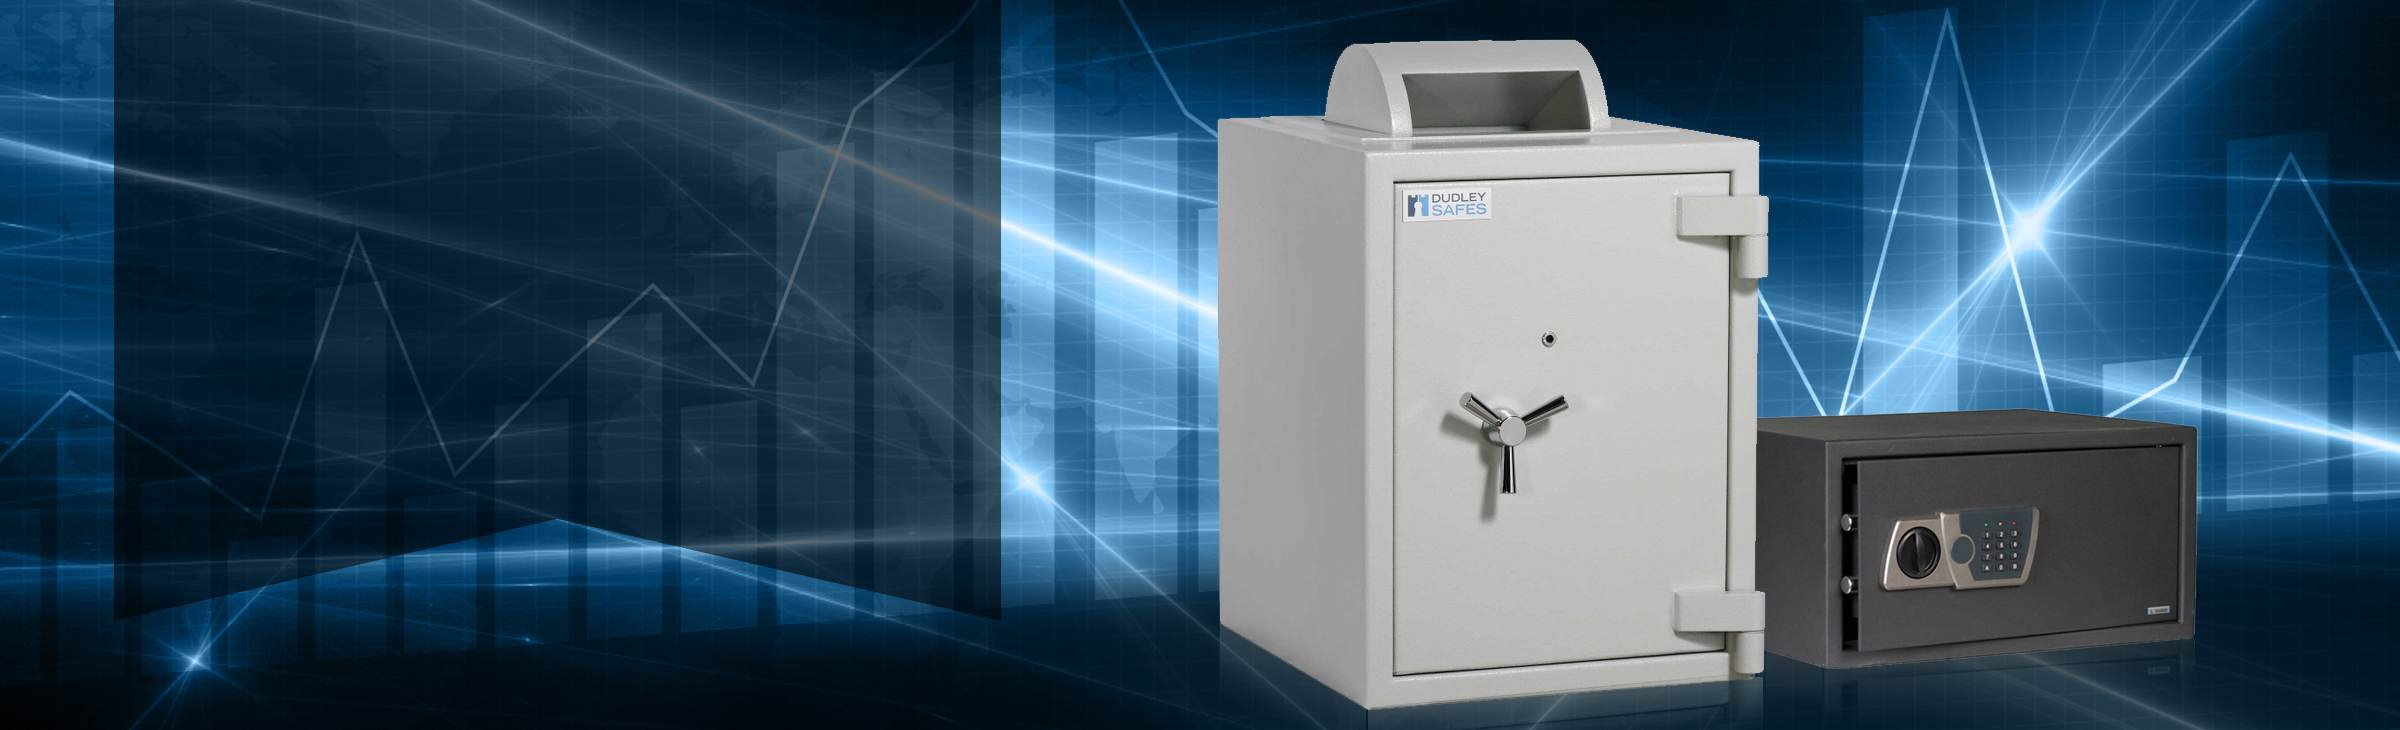 Security Safes for Business